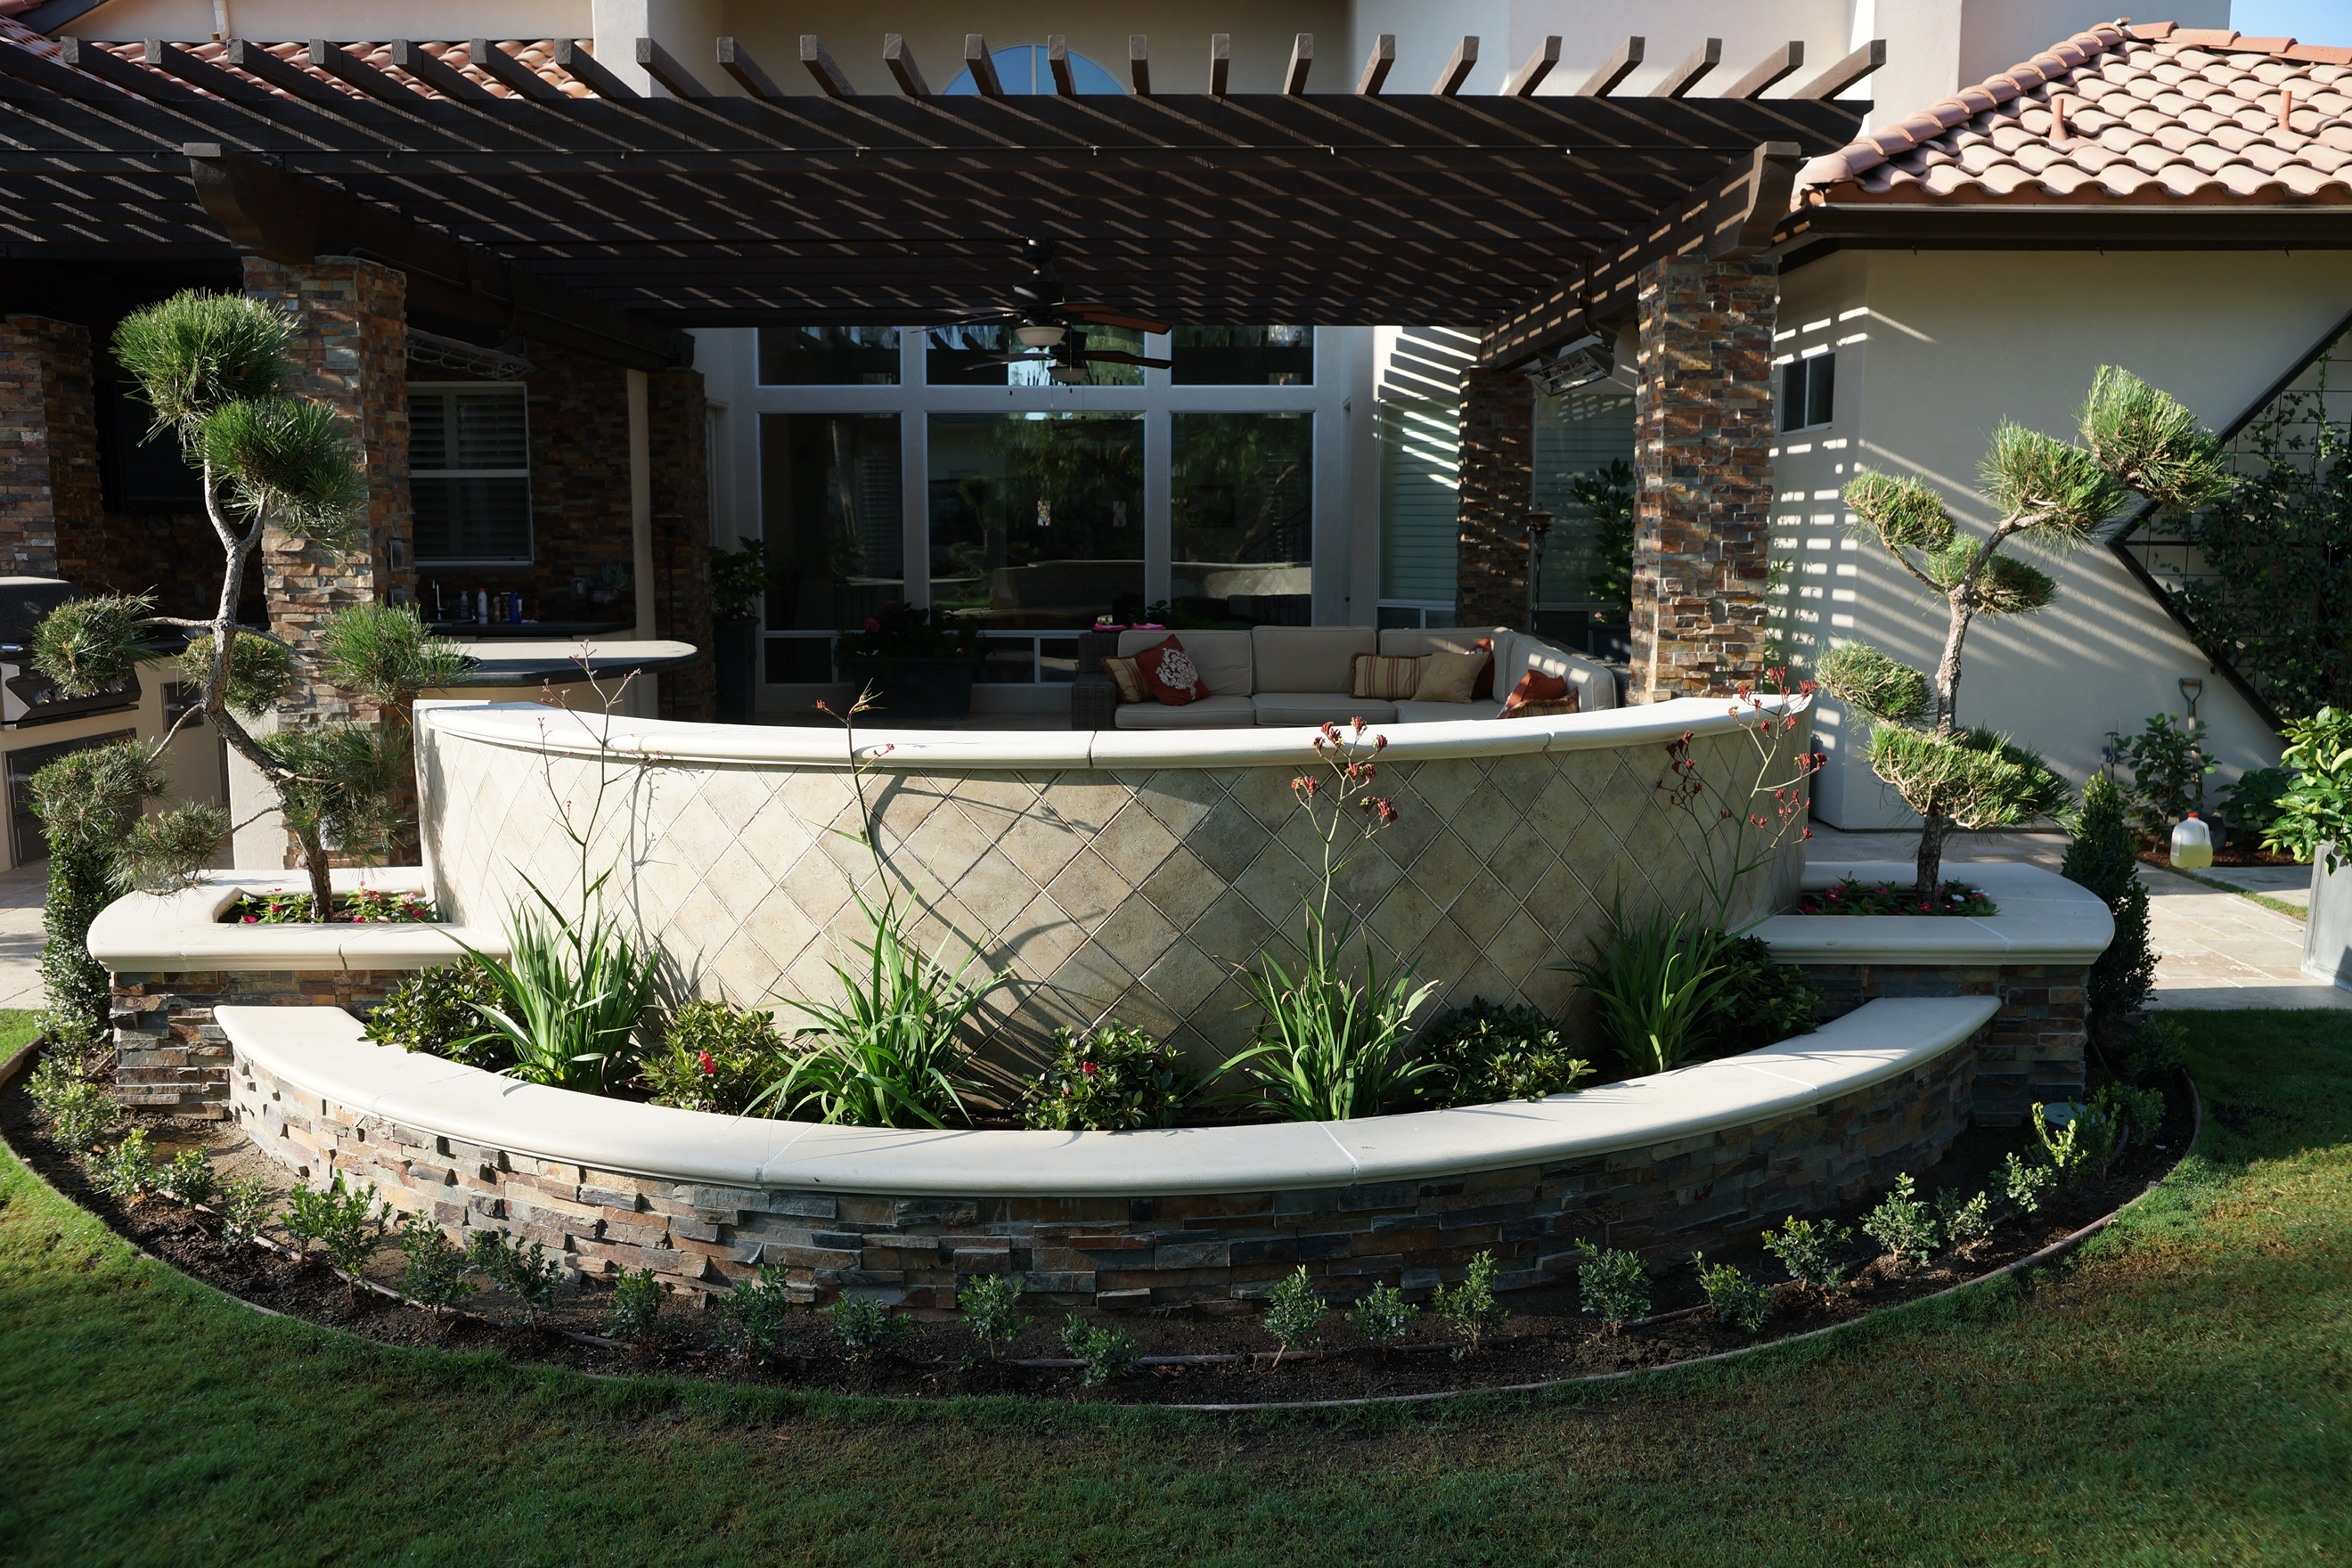 Outdoor Living Gallery - Paradise Pools and Spas - Bakersfield on Outdoor Living Spa id=50966